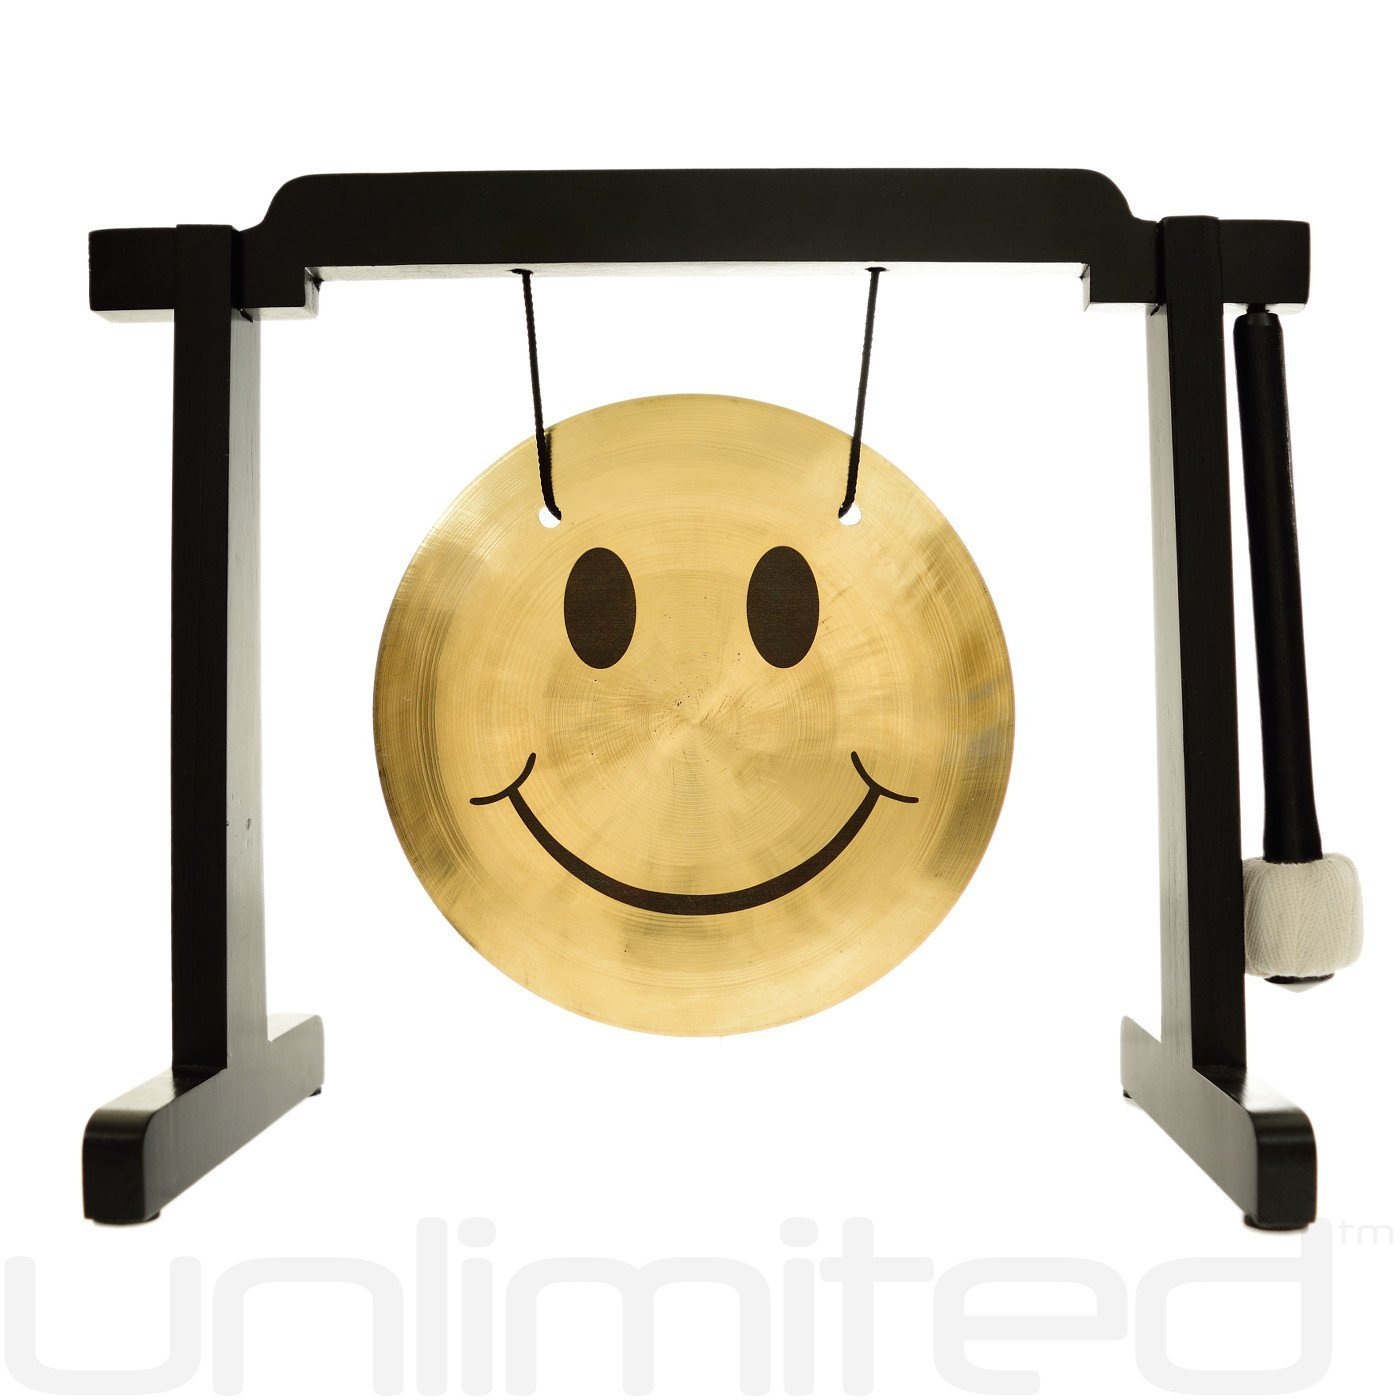 7'' Smiley Face Gong Stand Combos by Unlimited